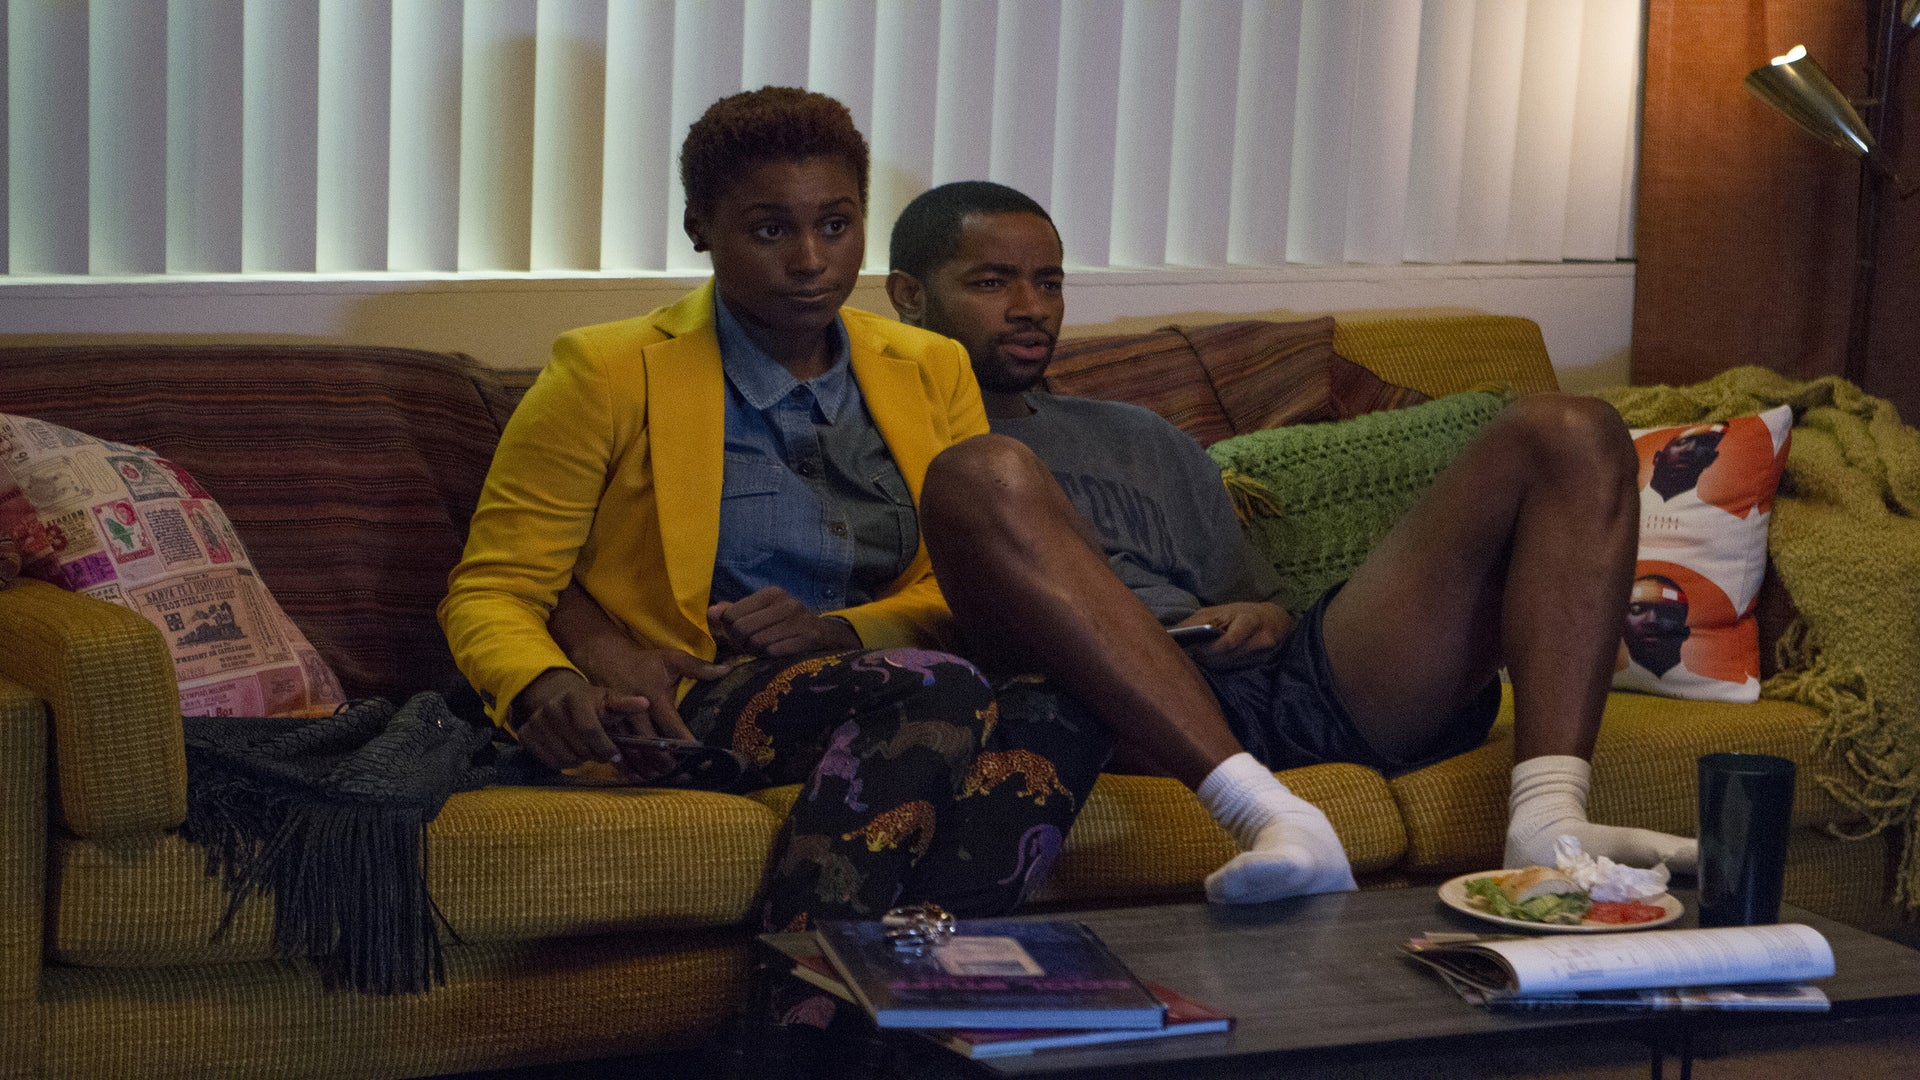 'Insecure' #TeamIssa vs. #TeamLawrence Viewers Have Divided Everyone's Twitter Timelines, Where Do You Stand?